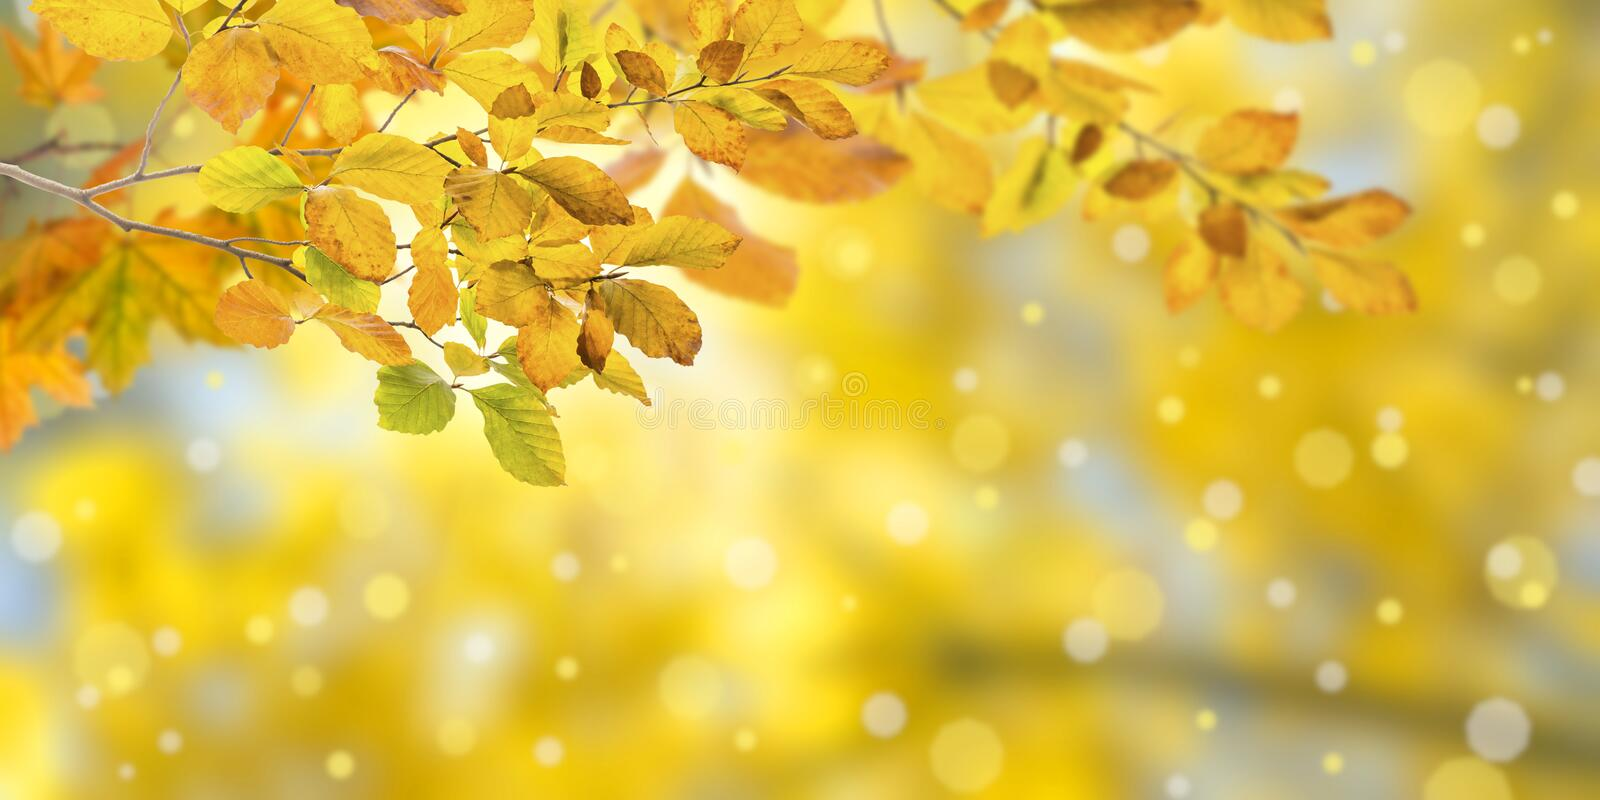 Nature autumn background. With golden foliage royalty free stock photo